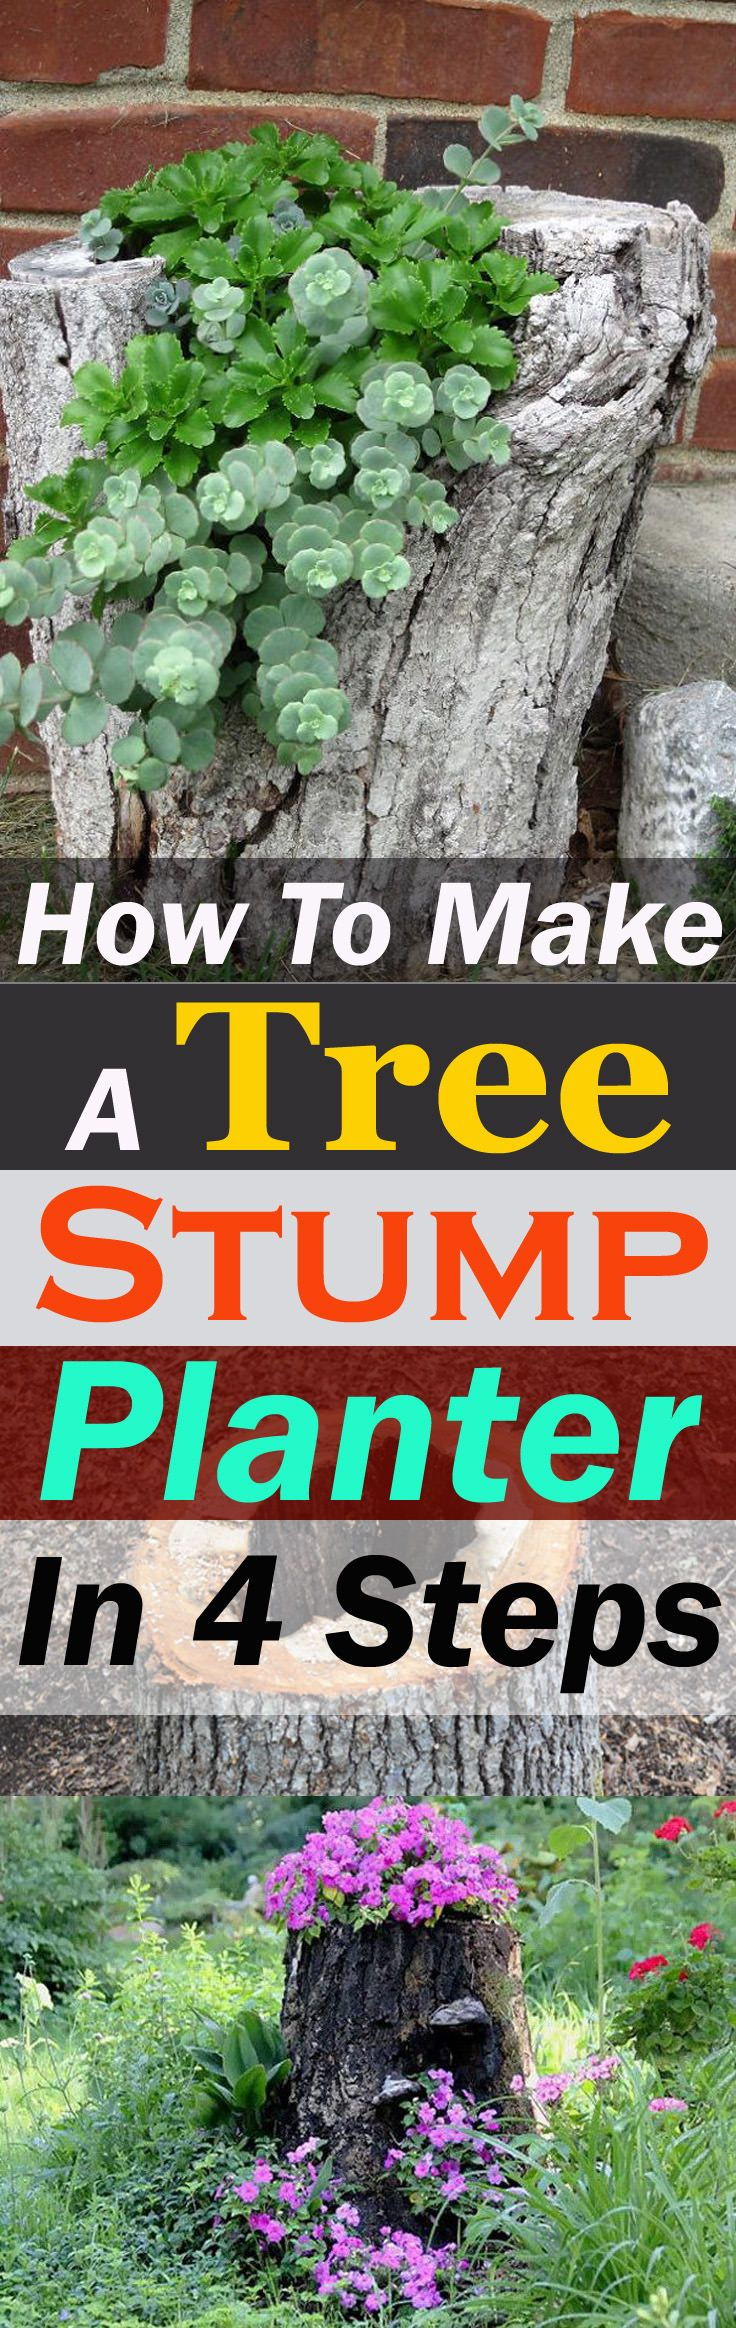 Learn how to make a tree stump planter and make use of an old stump that you want to get rid of.